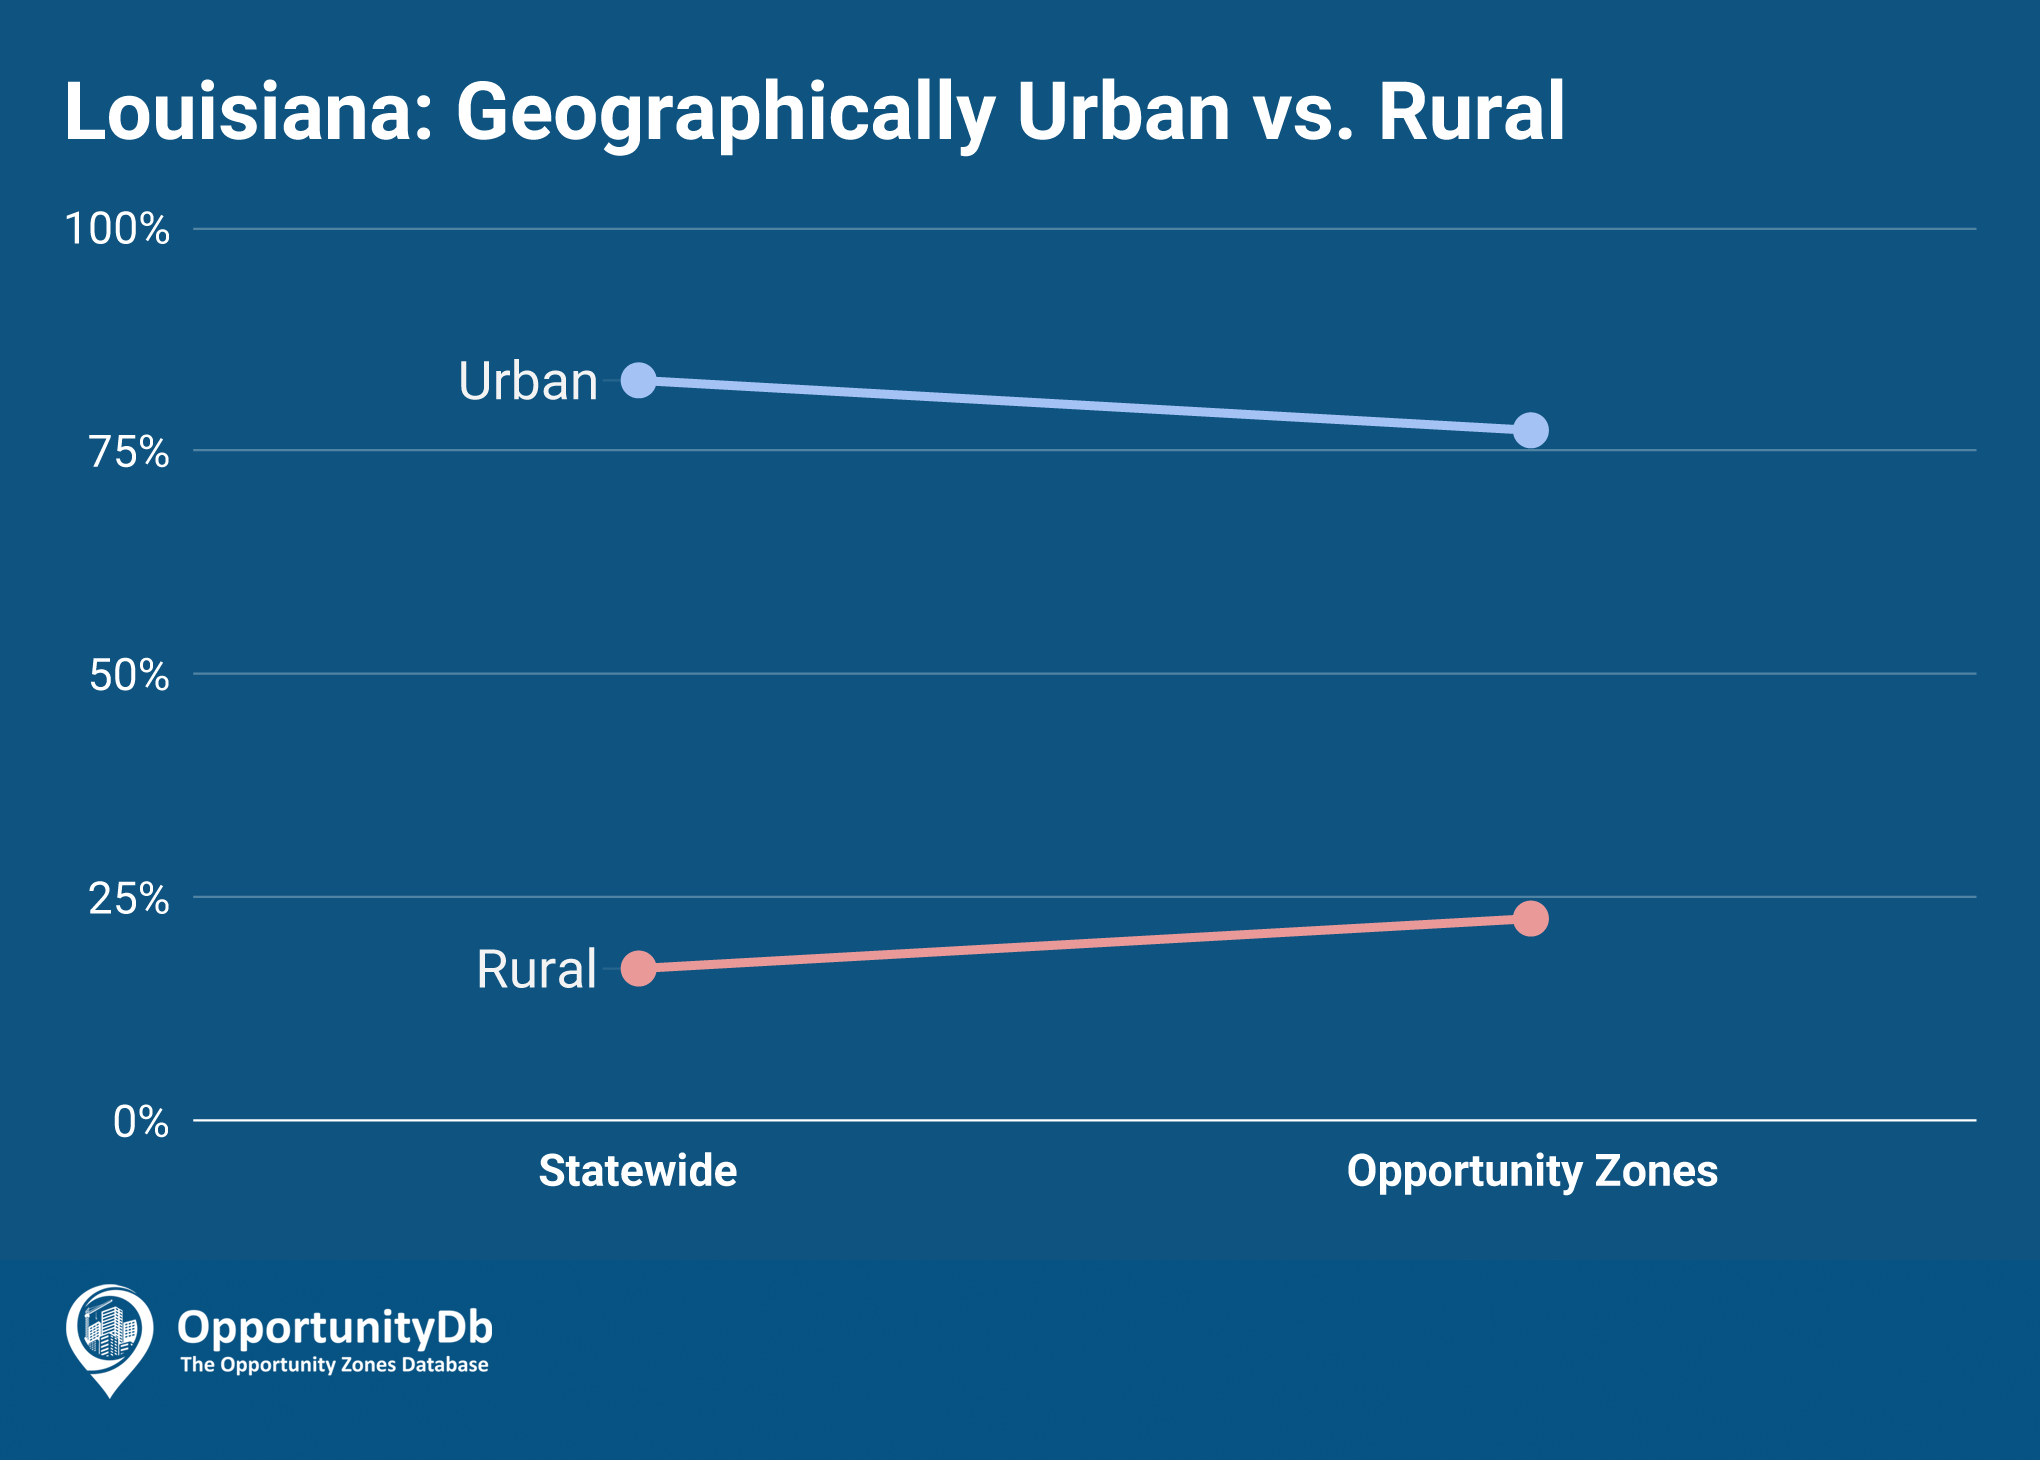 Urban vs. Rural in Louisiana's Opportunity Zones